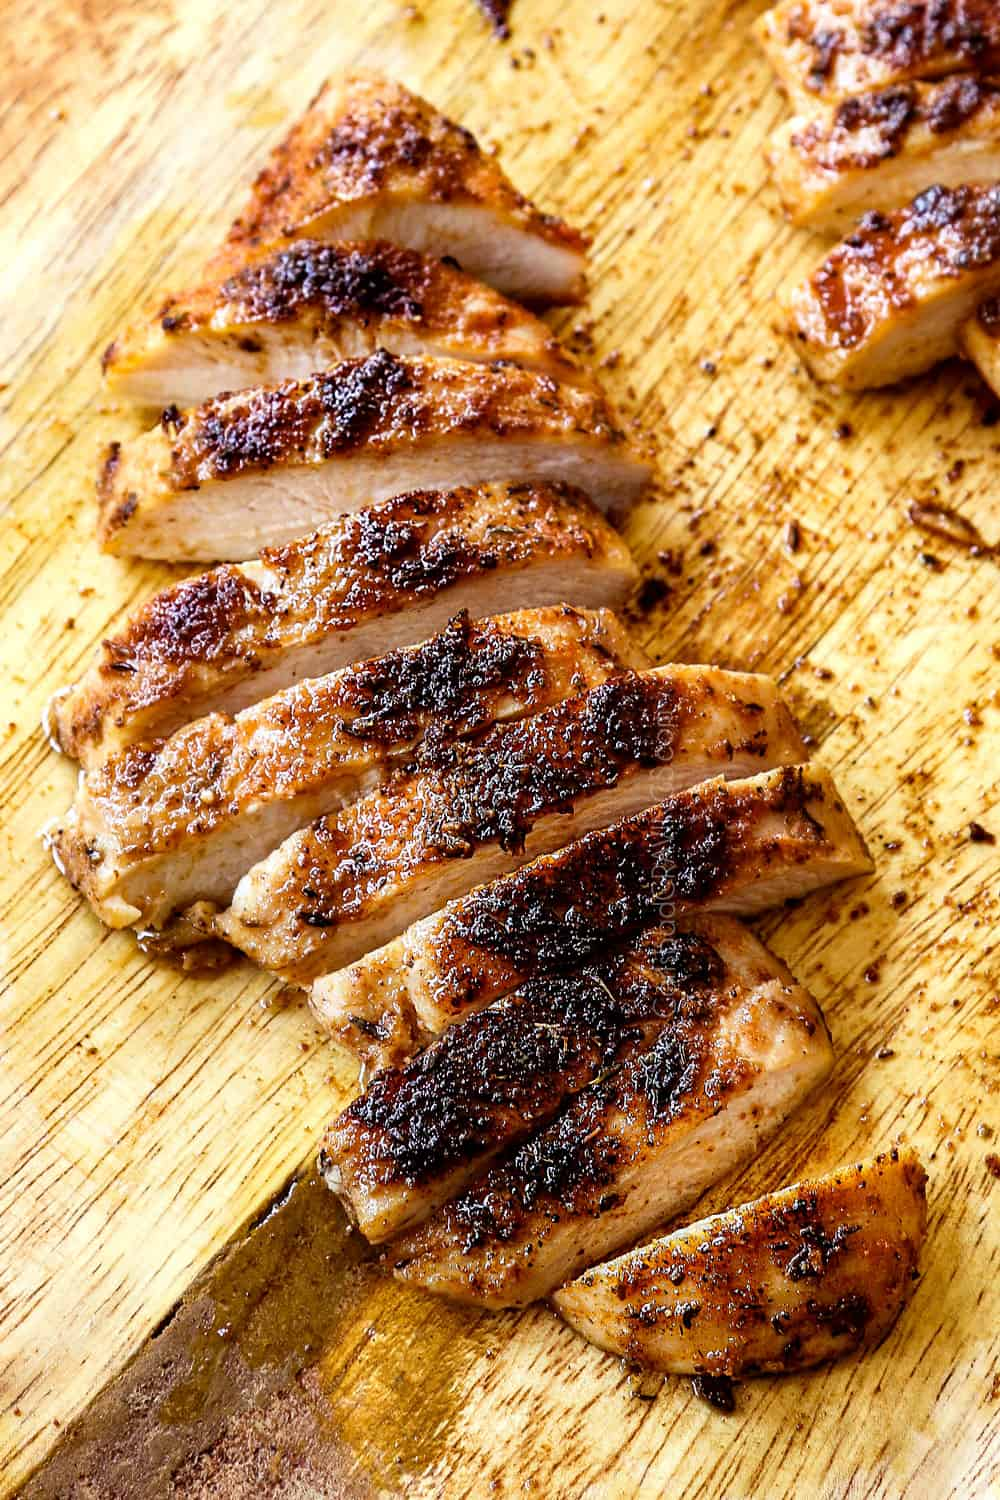 blackened chicken on a cutting board sliced into strips showing the charred crust